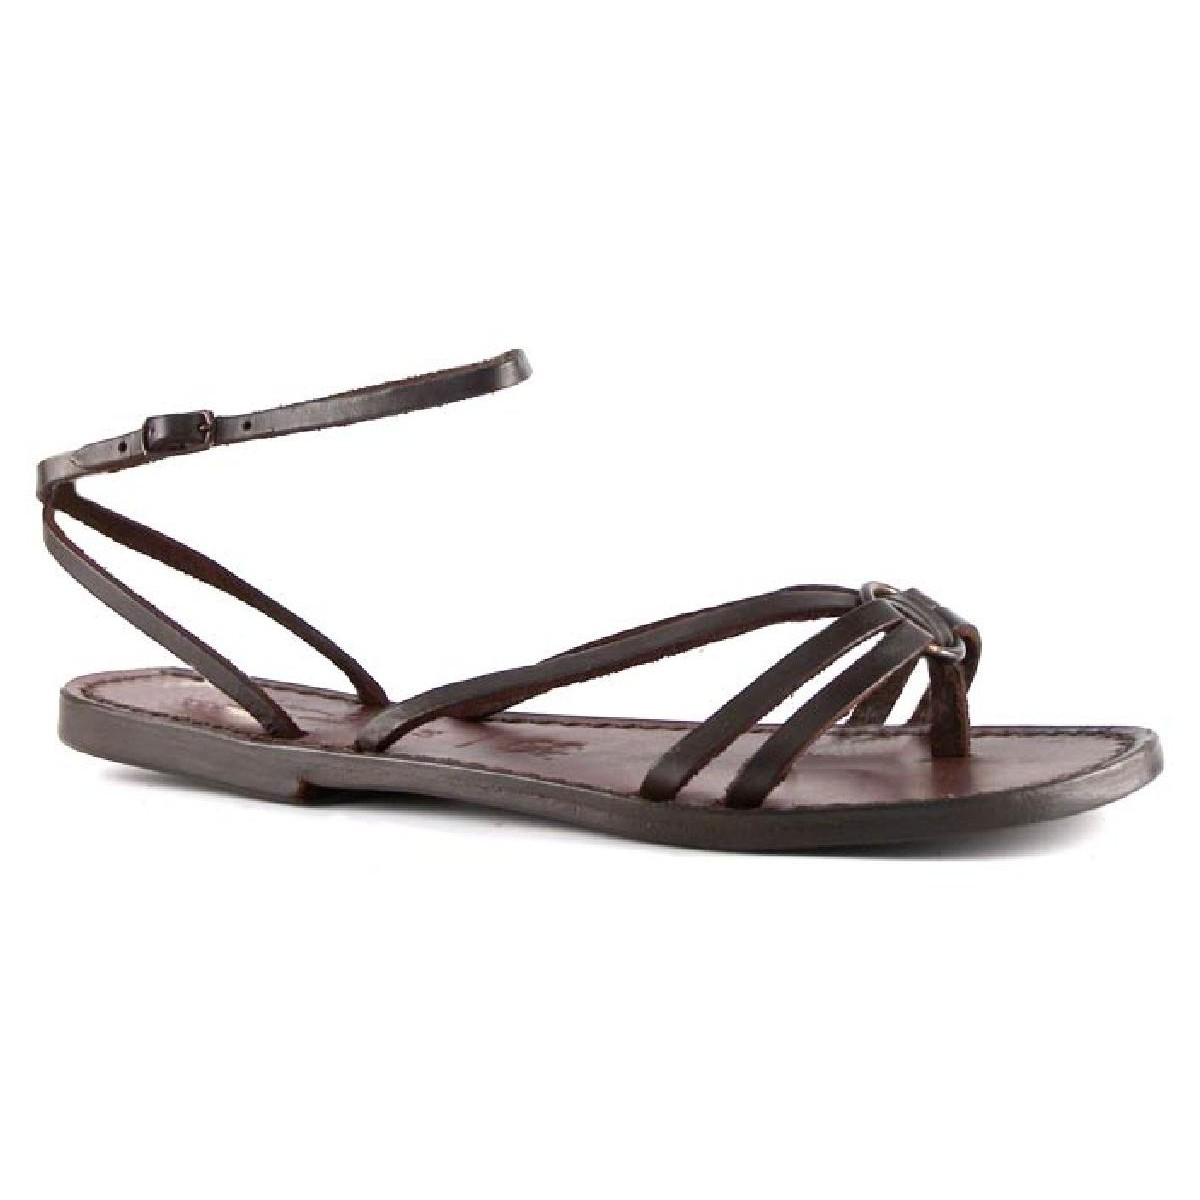 a59a2232caa9 Women sandals hand made in Italy in dark brown leather. Loading zoom